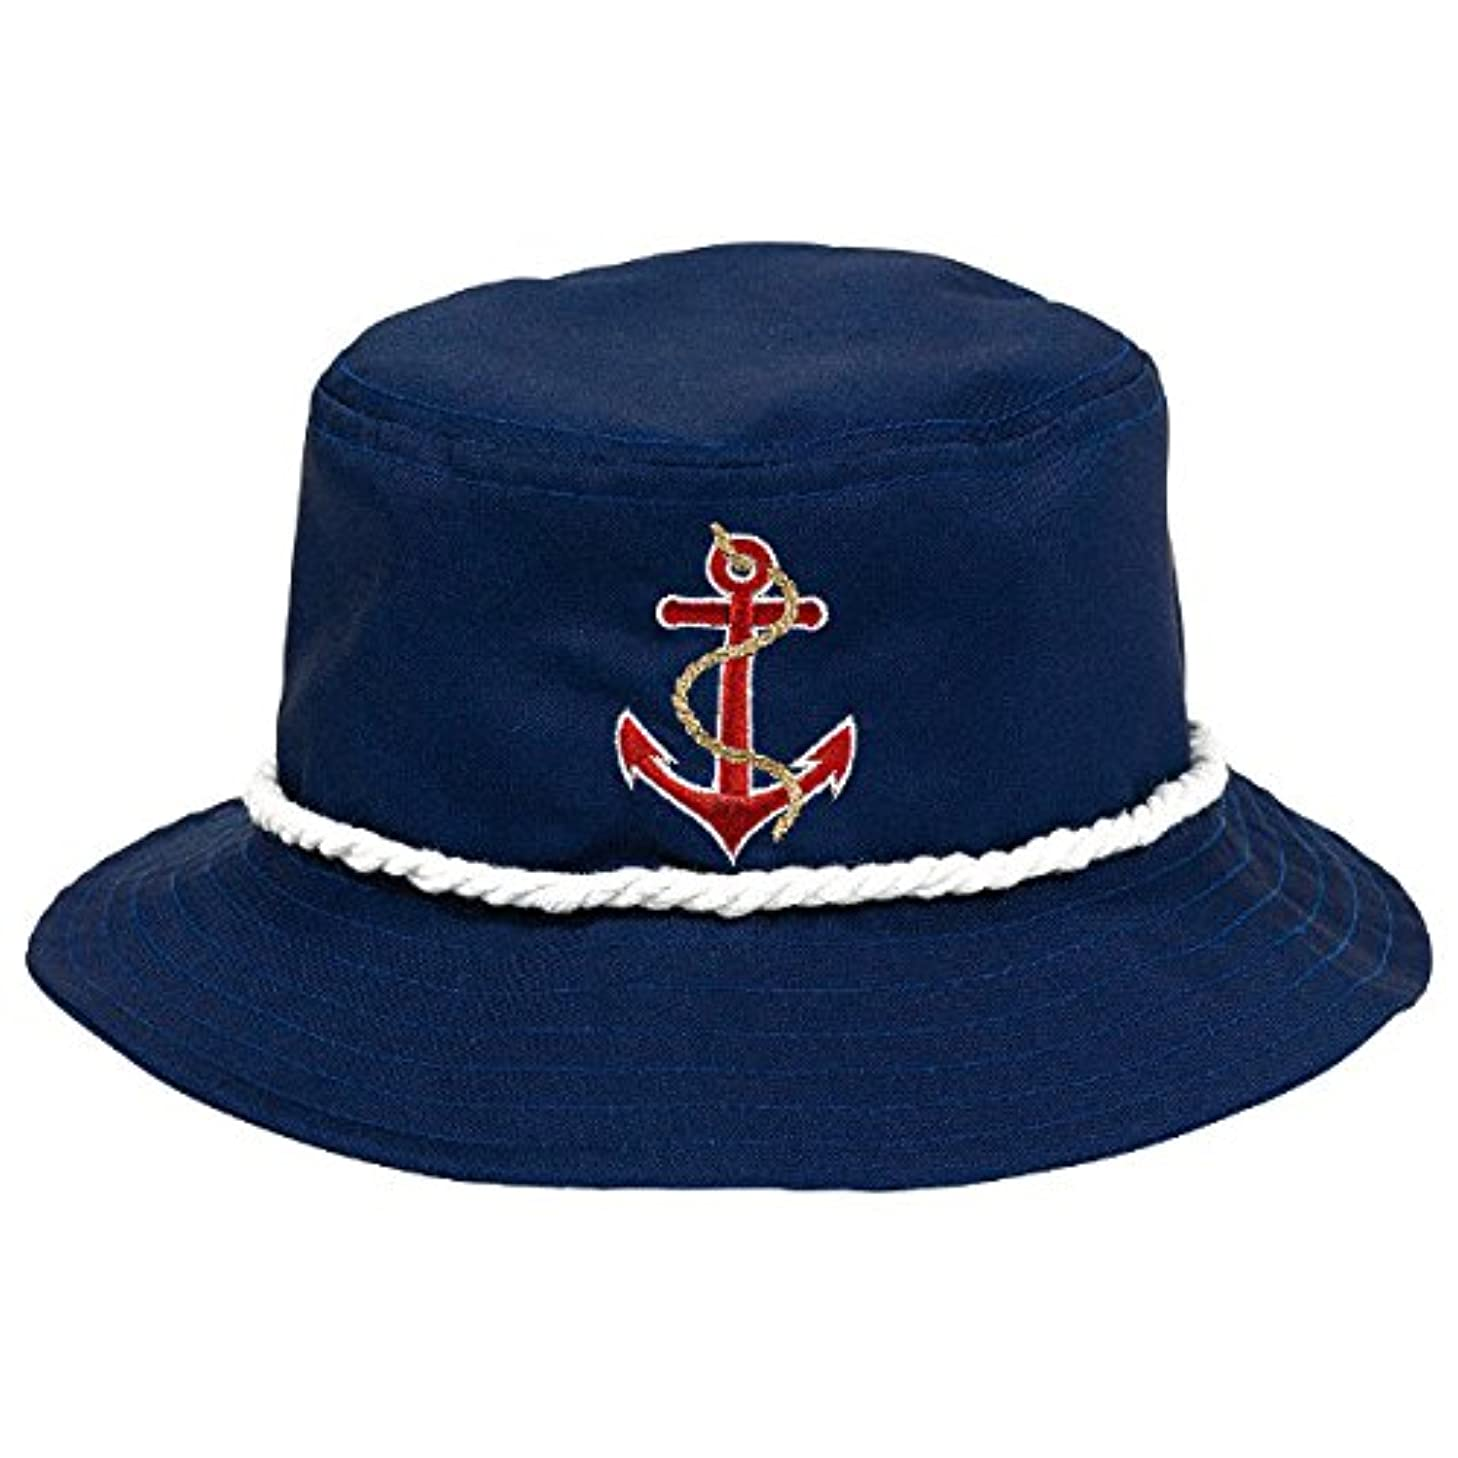 Anchors Aweigh Party Bucket Hat, 10